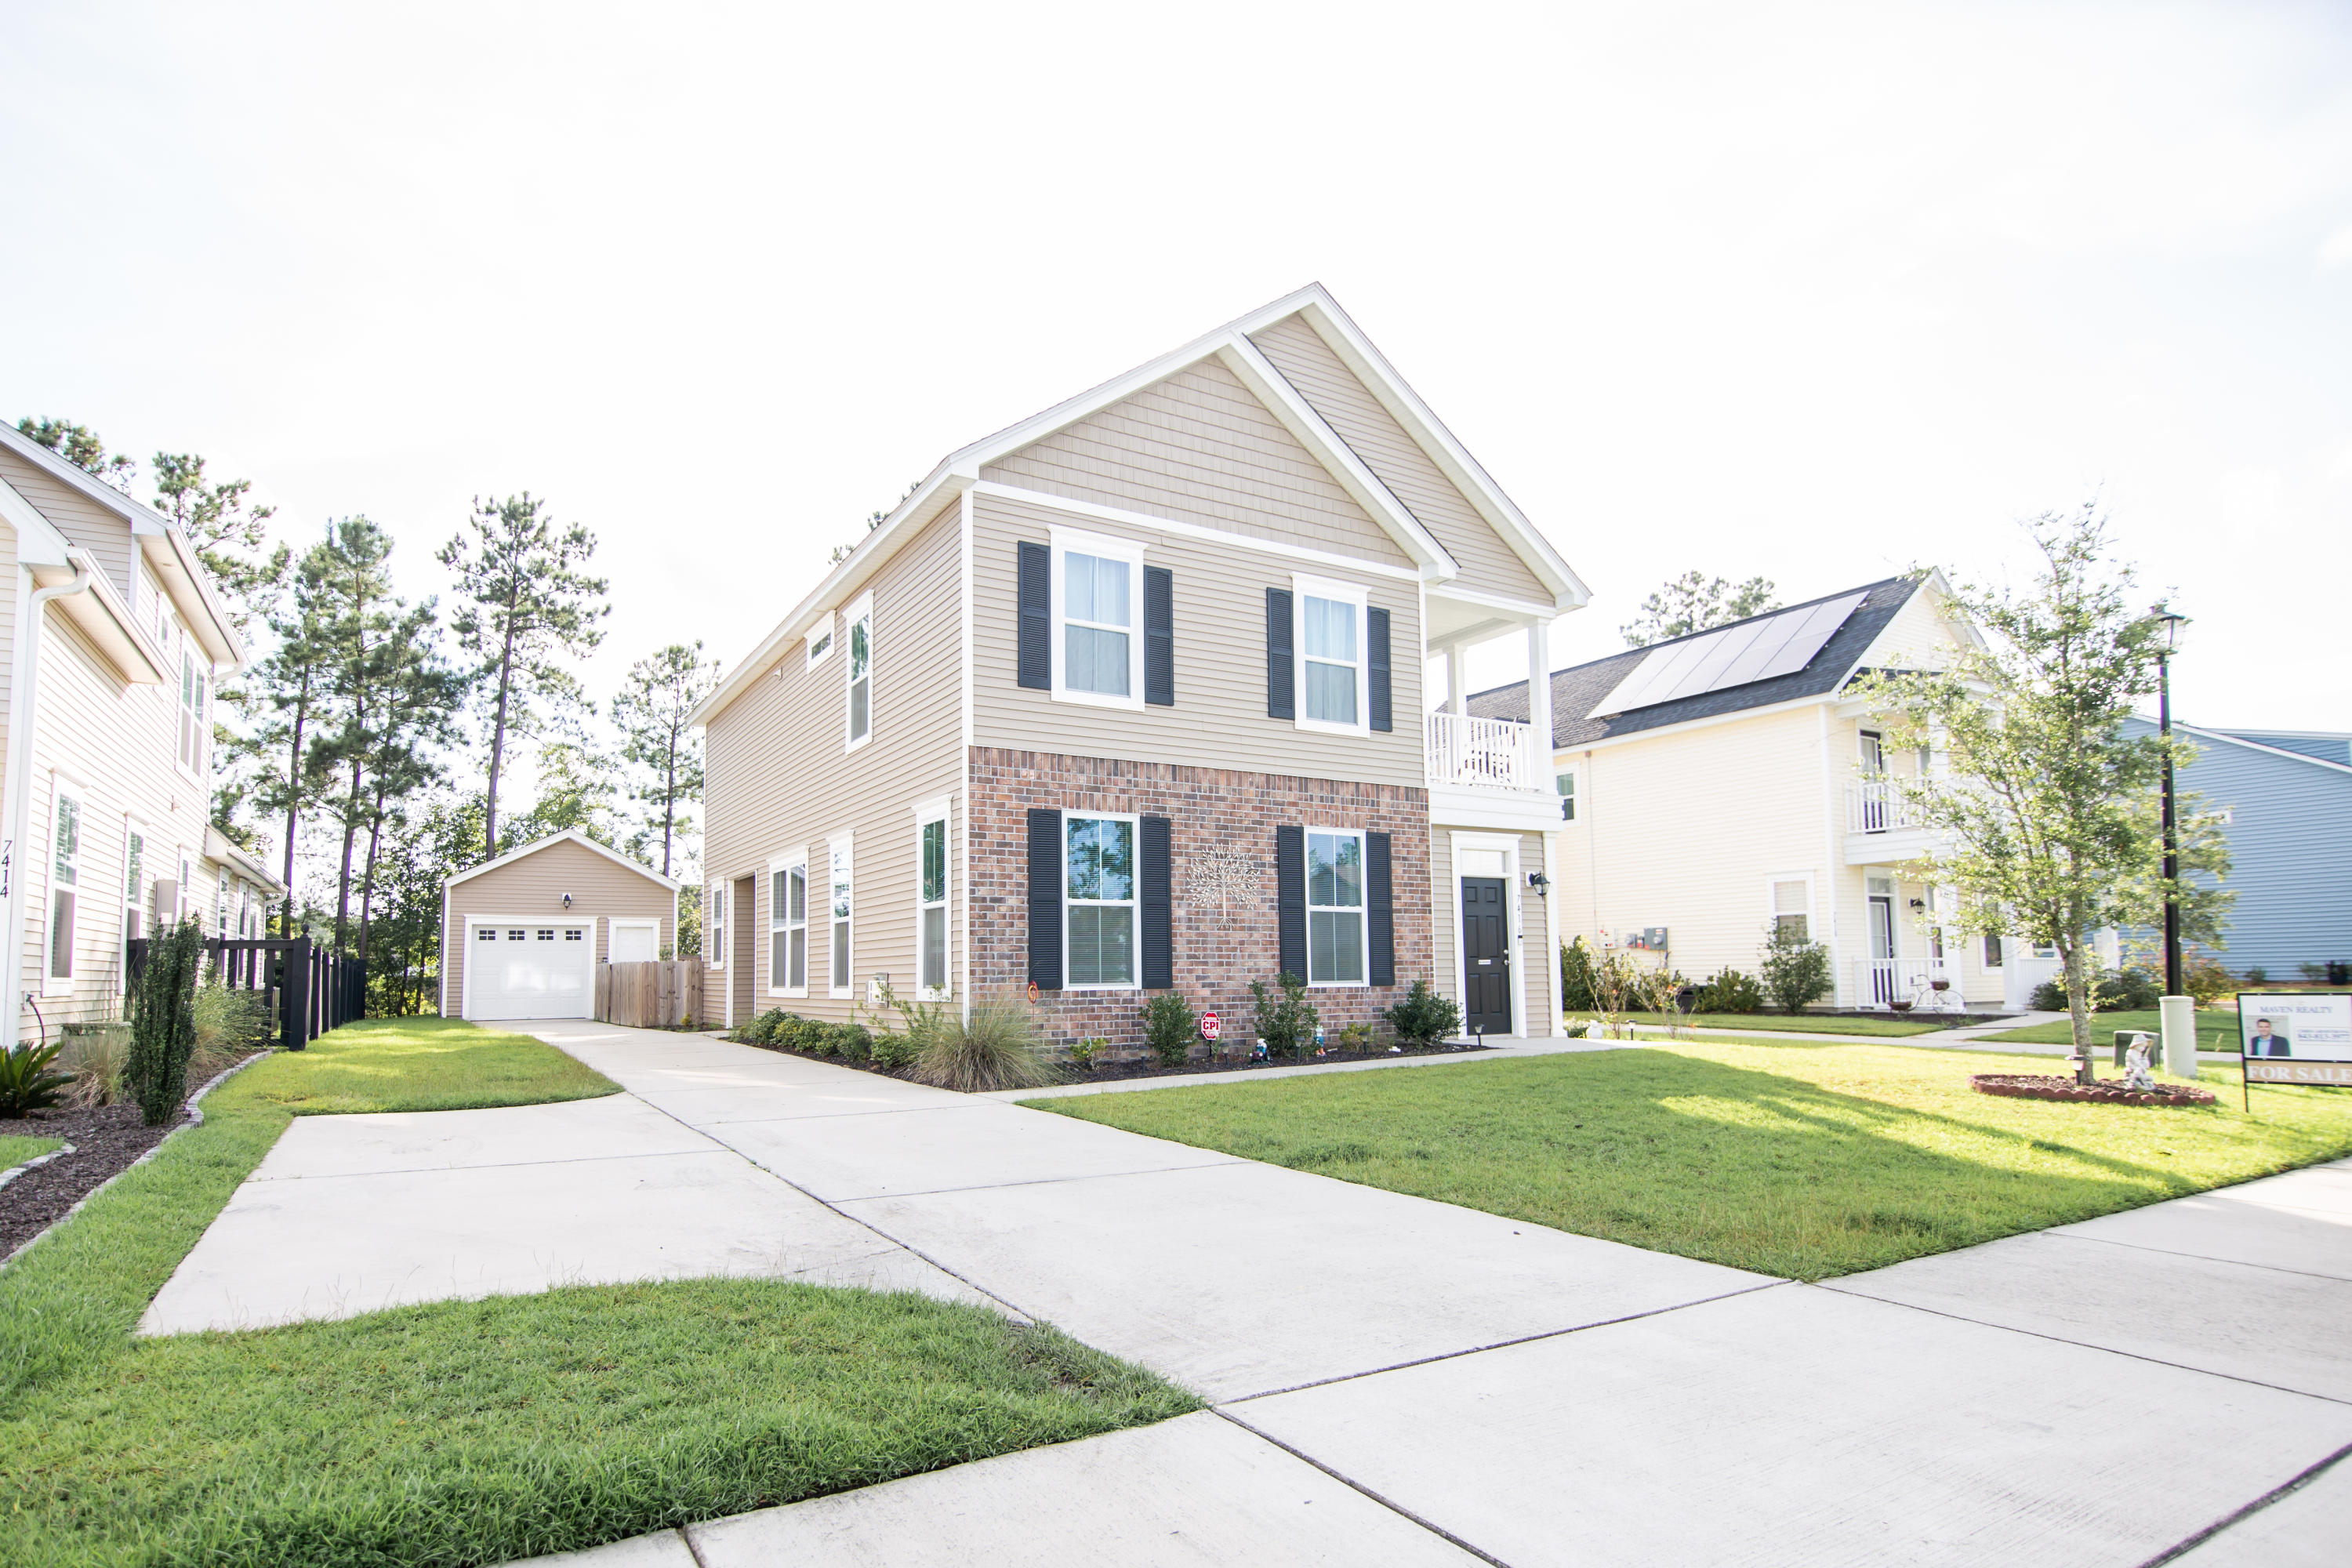 7416 Purser Lane Hanahan, SC 29410